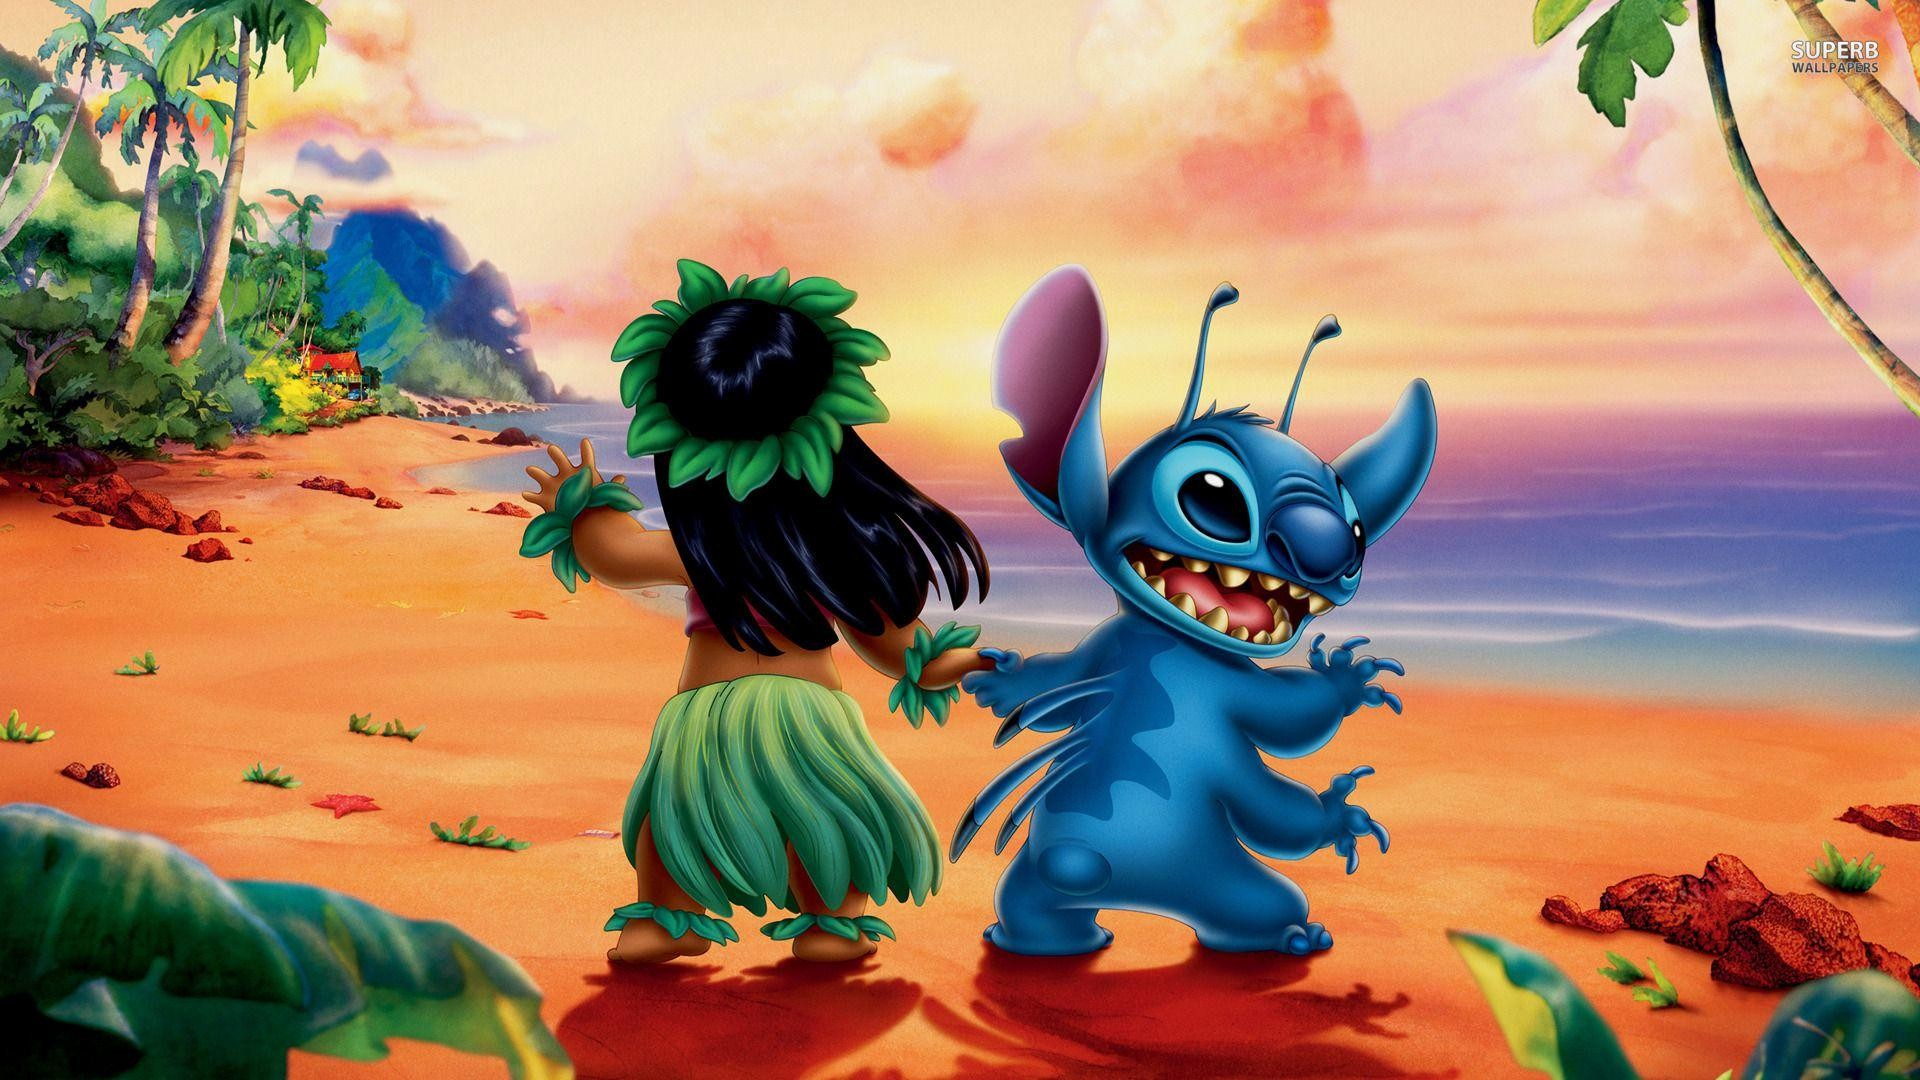 Lilo And Stitch Wallpaper Hd 2246367 Hd Wallpaper Backgrounds Download